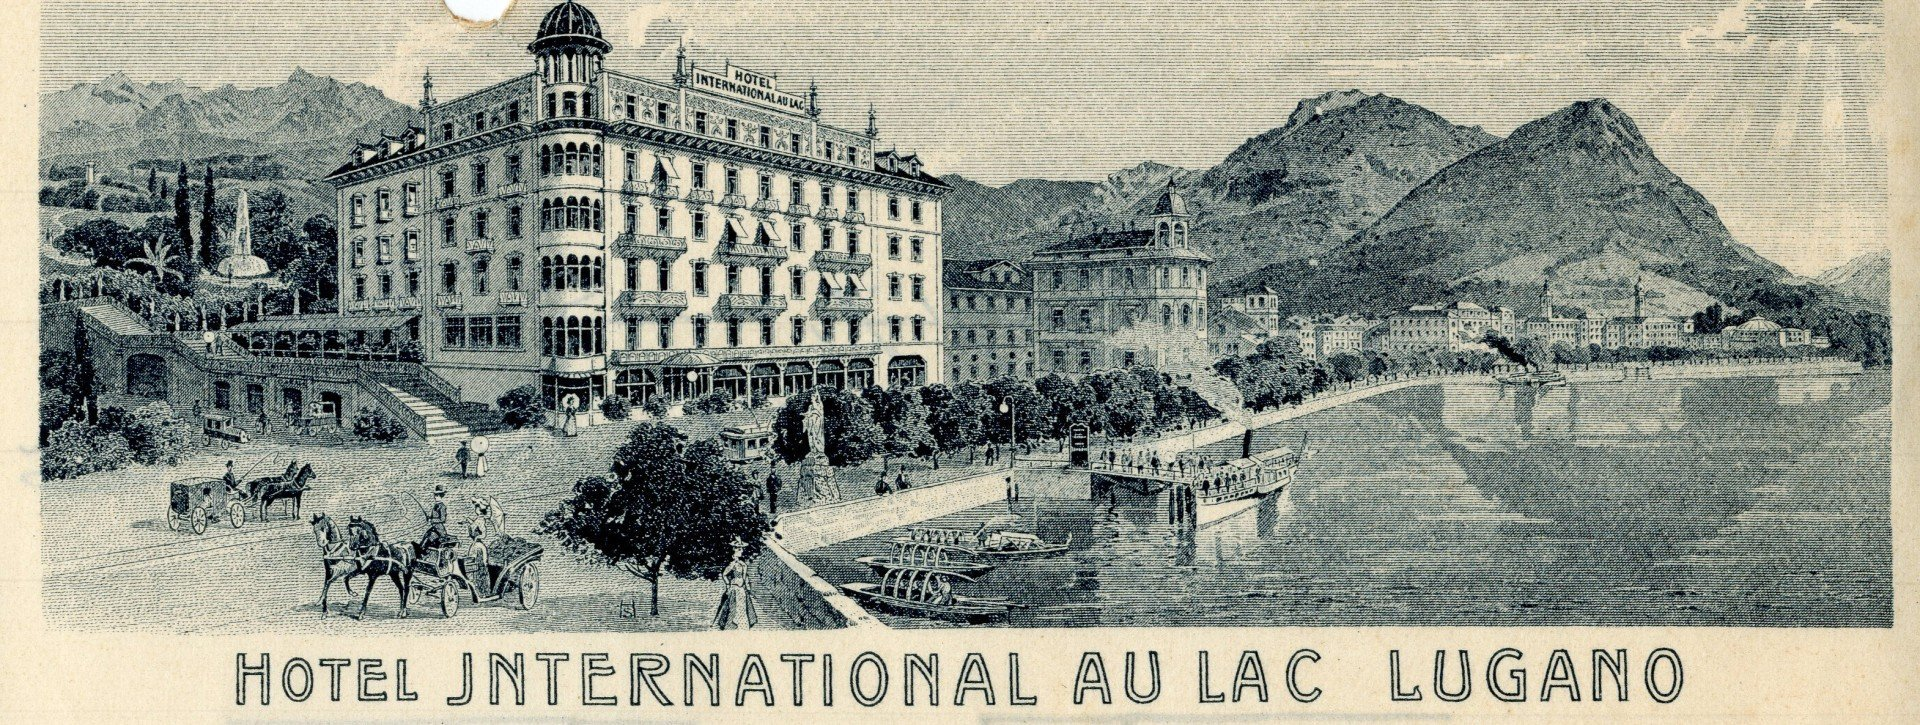 Historisches Bild des Hotel International au Lac Lugano